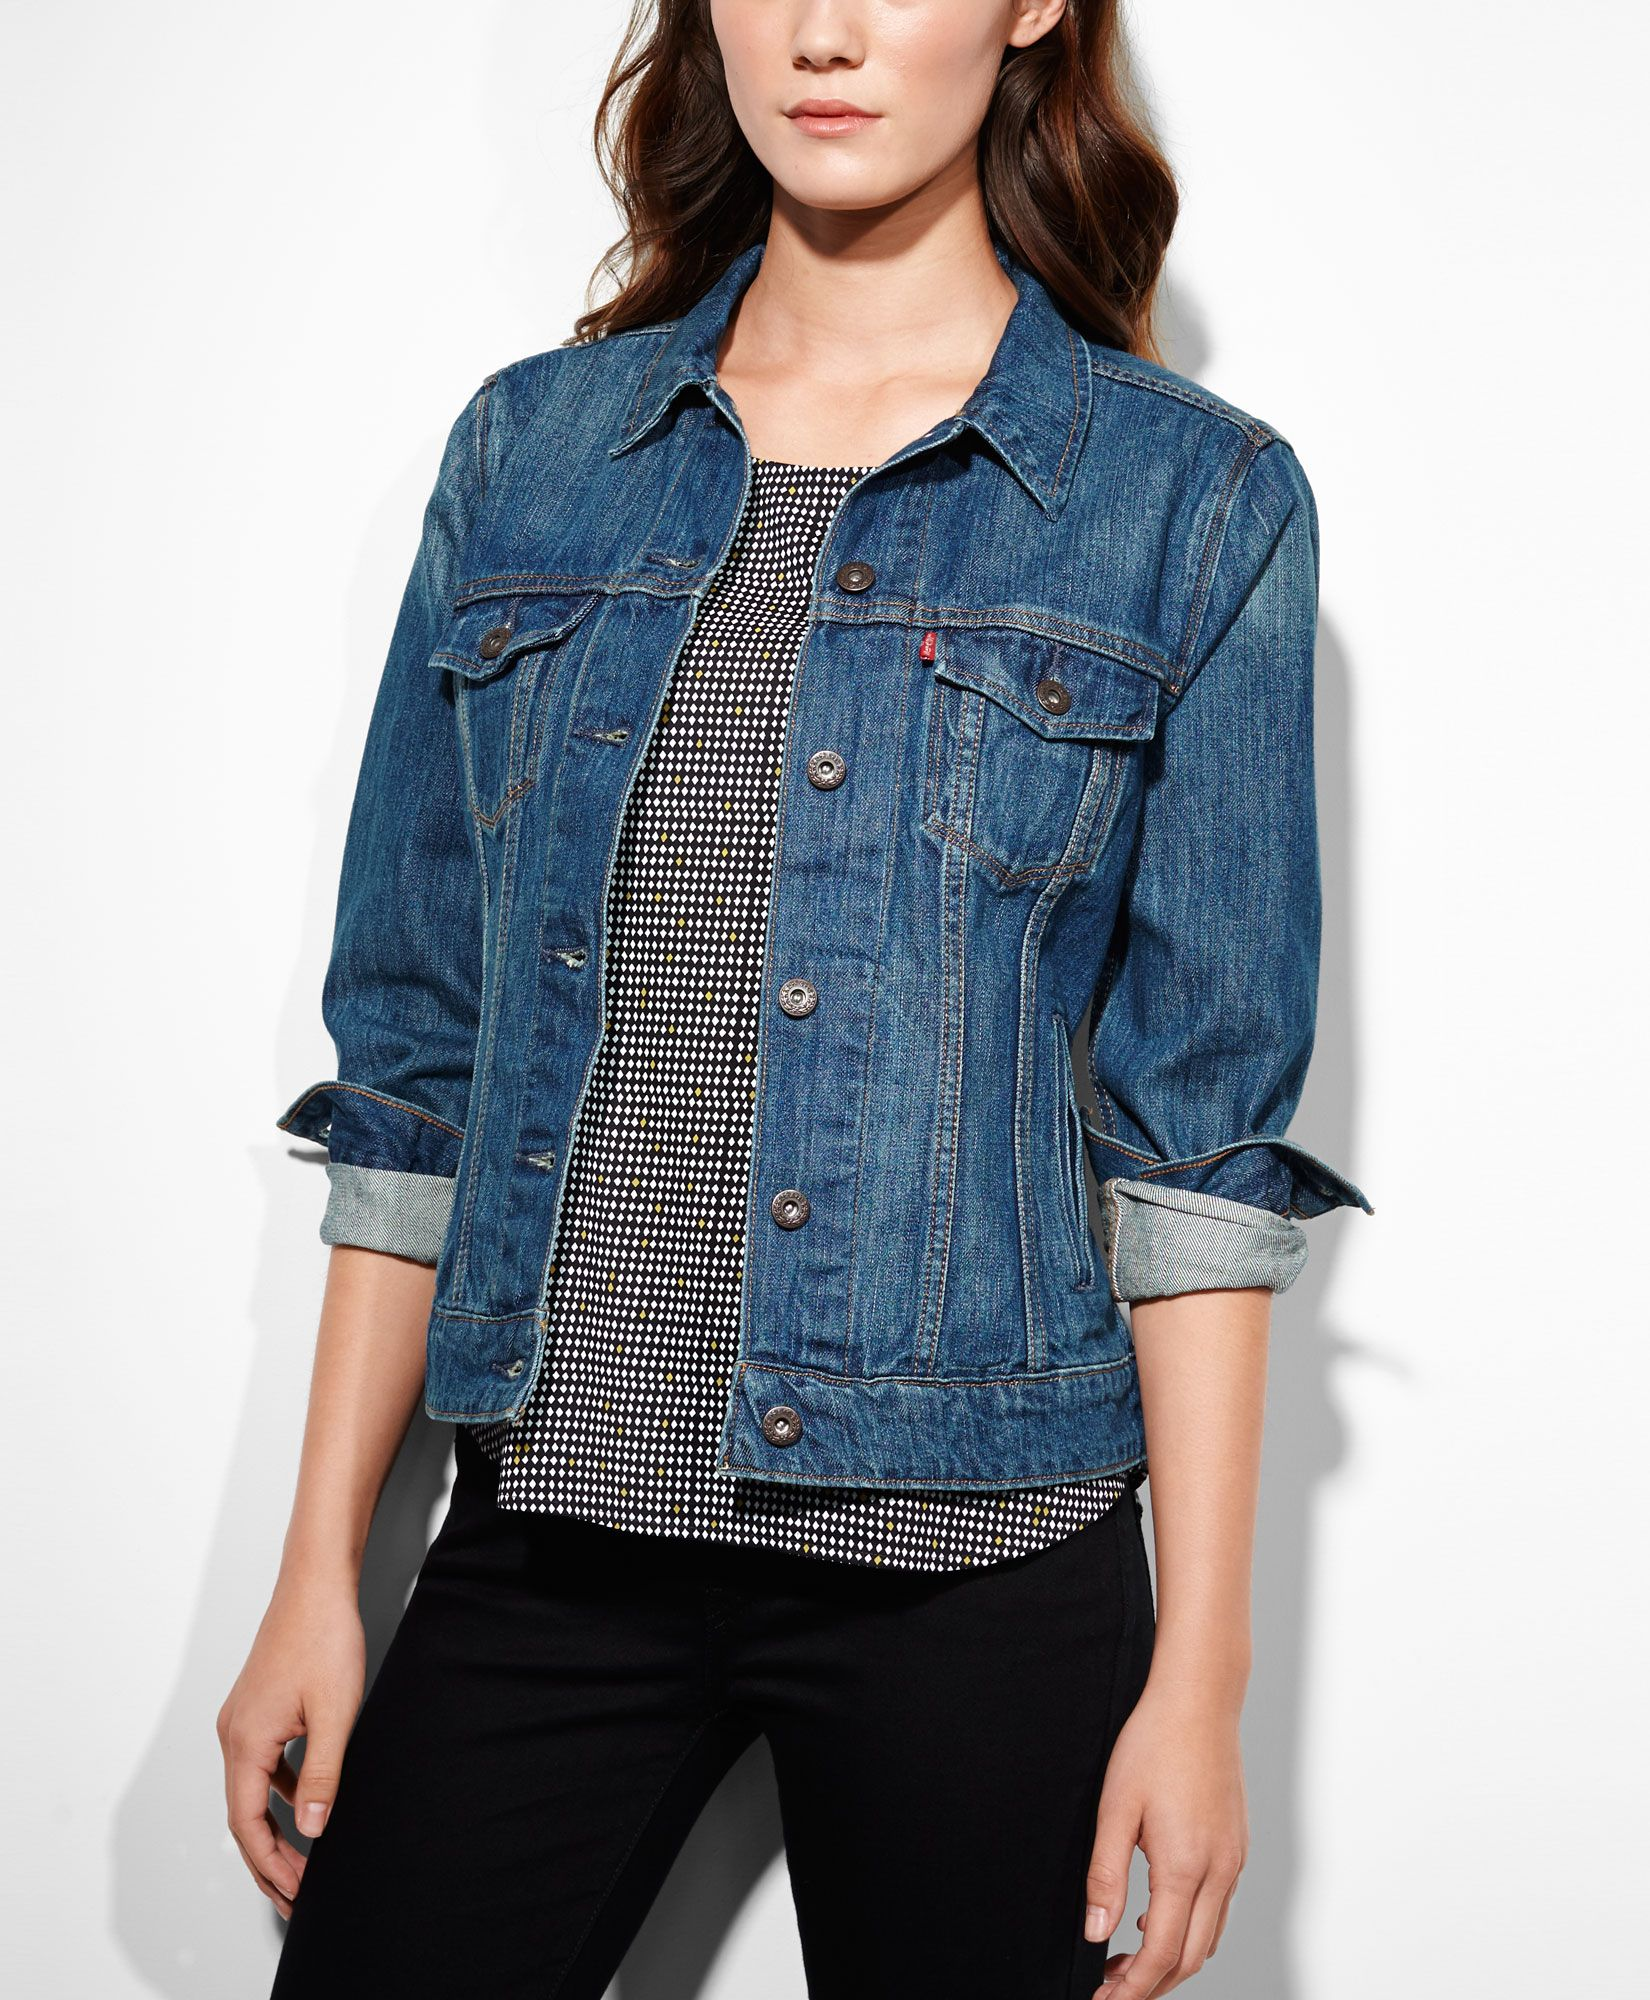 Levi's Trucker Jacket - Vintage Blue - Jackets & Vests | Wish List ...